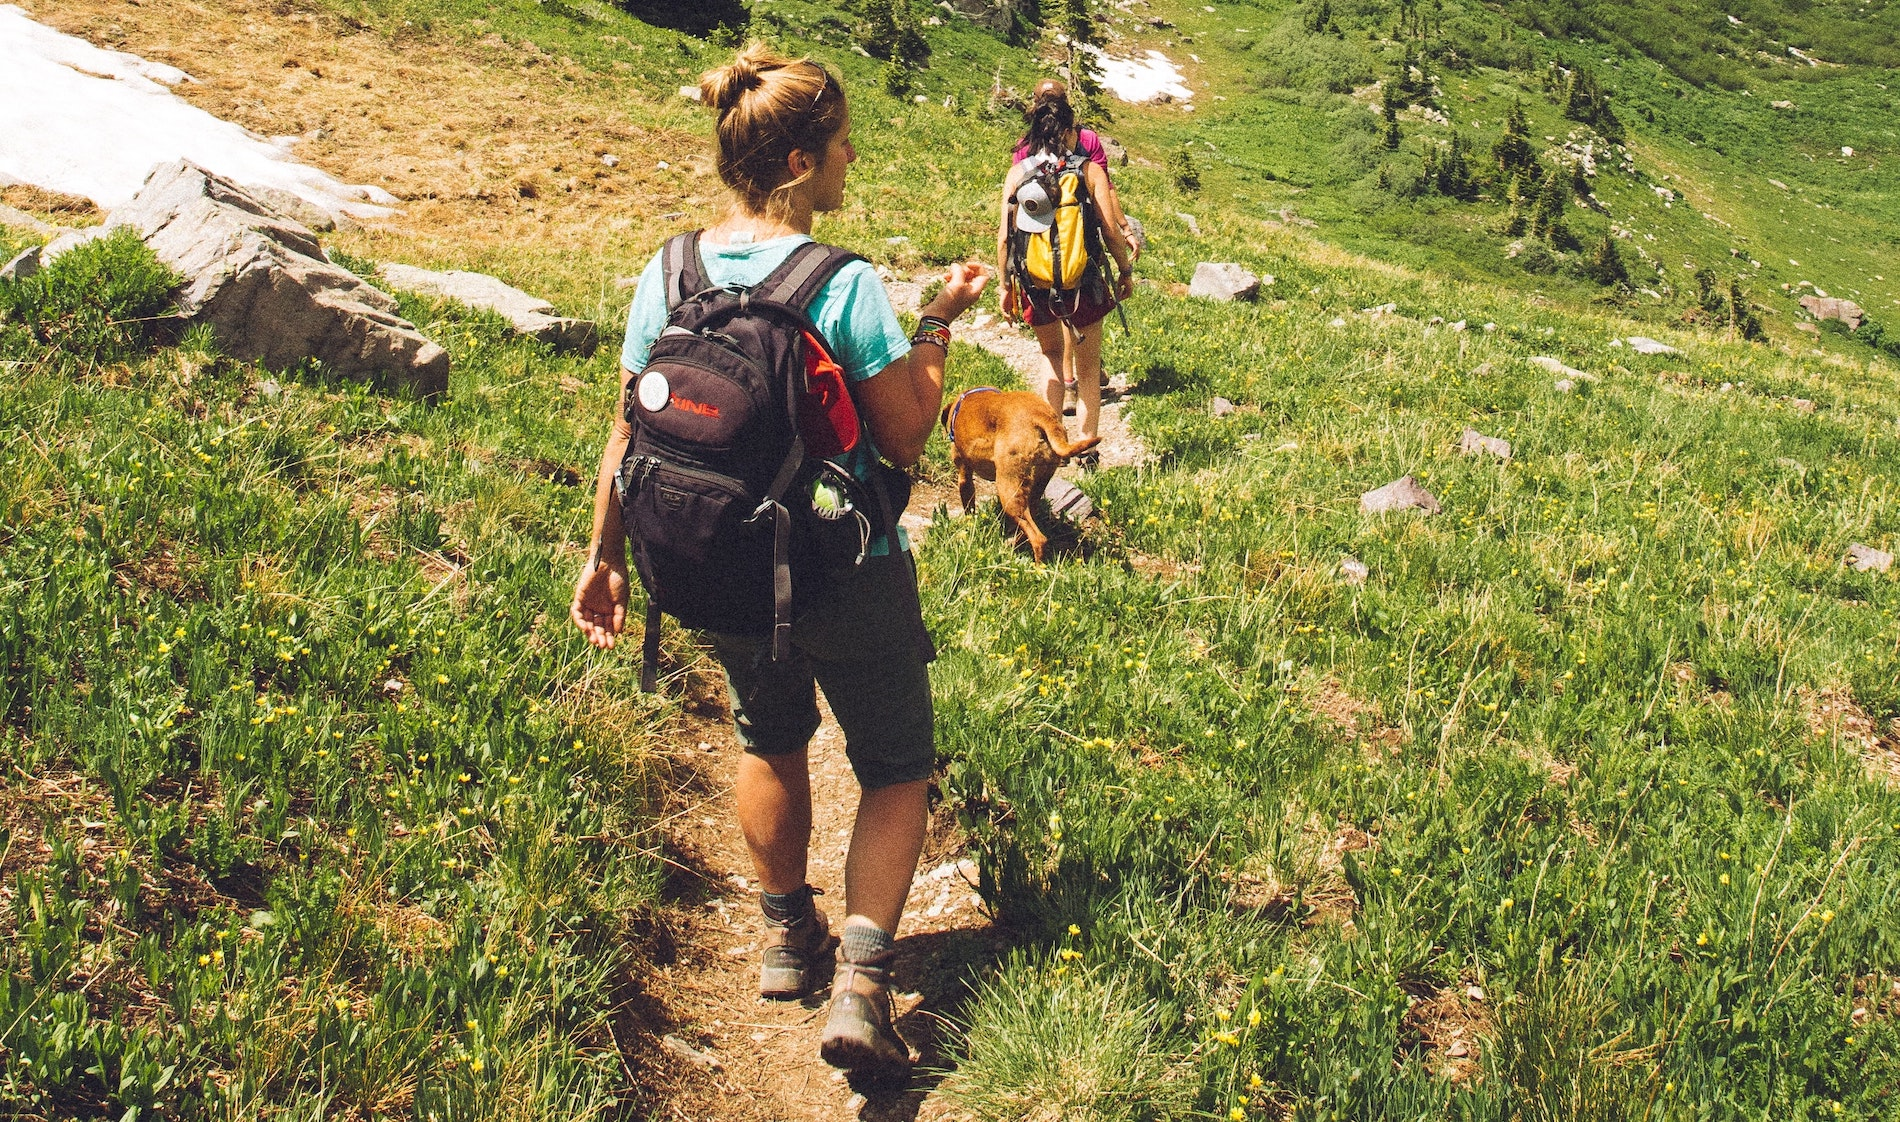 two girls hiking with their dog